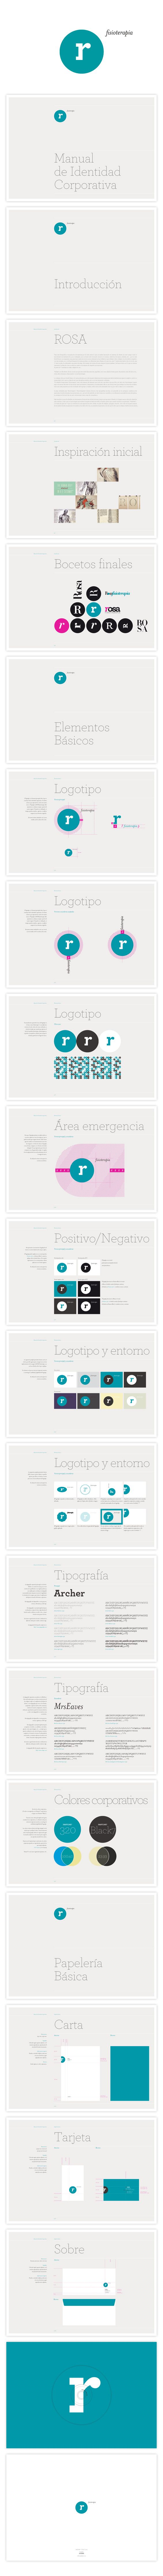 Logo and Corporate guidelines on Behance